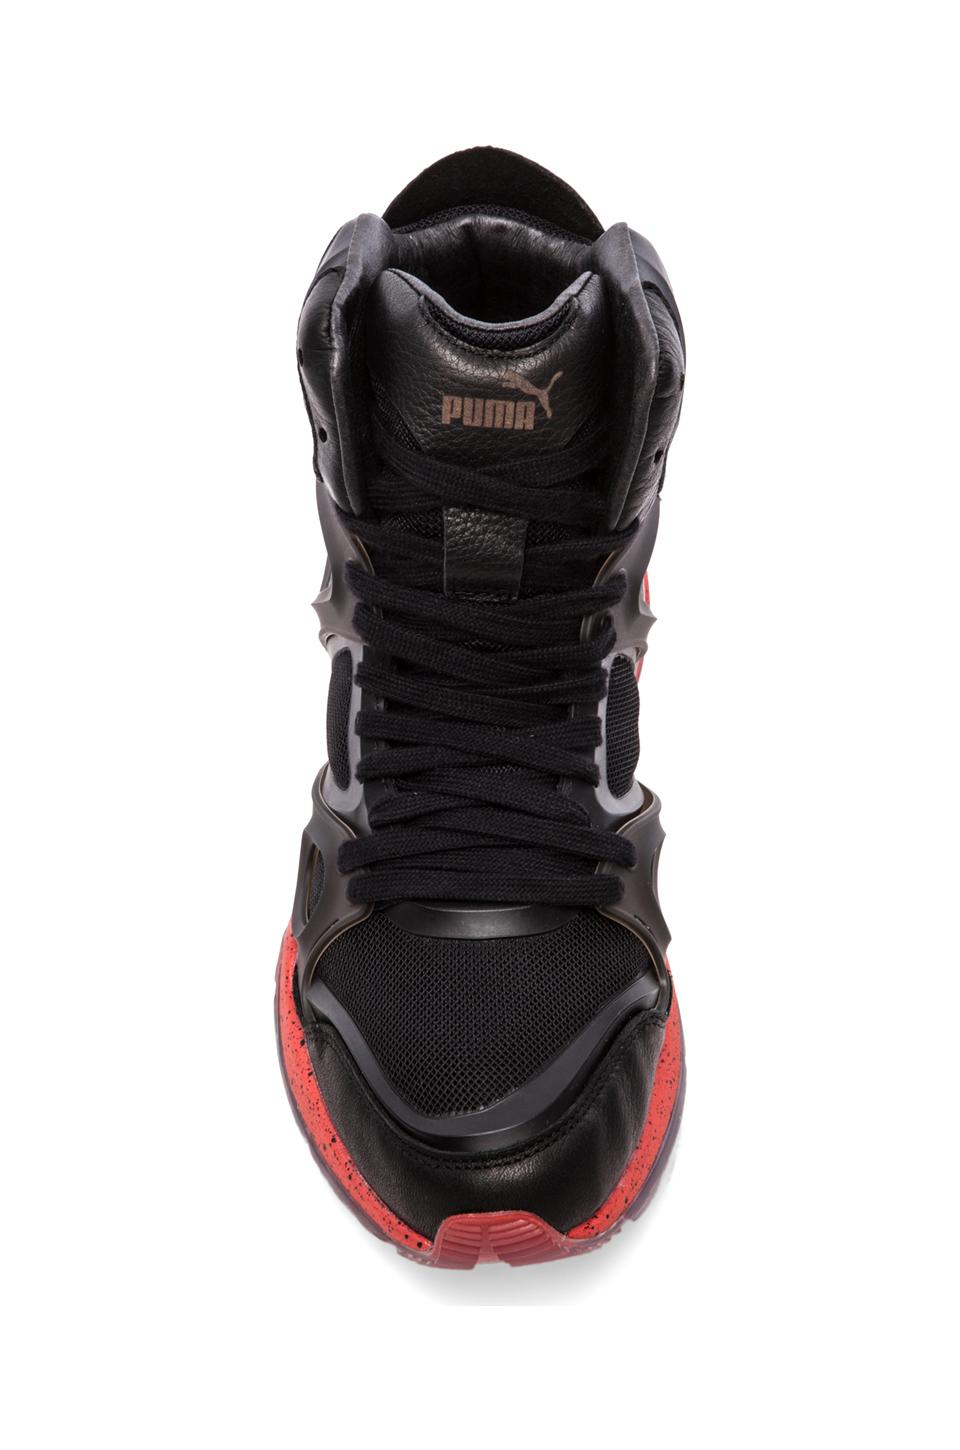 Alexander McQueen Puma Run Mid in Black